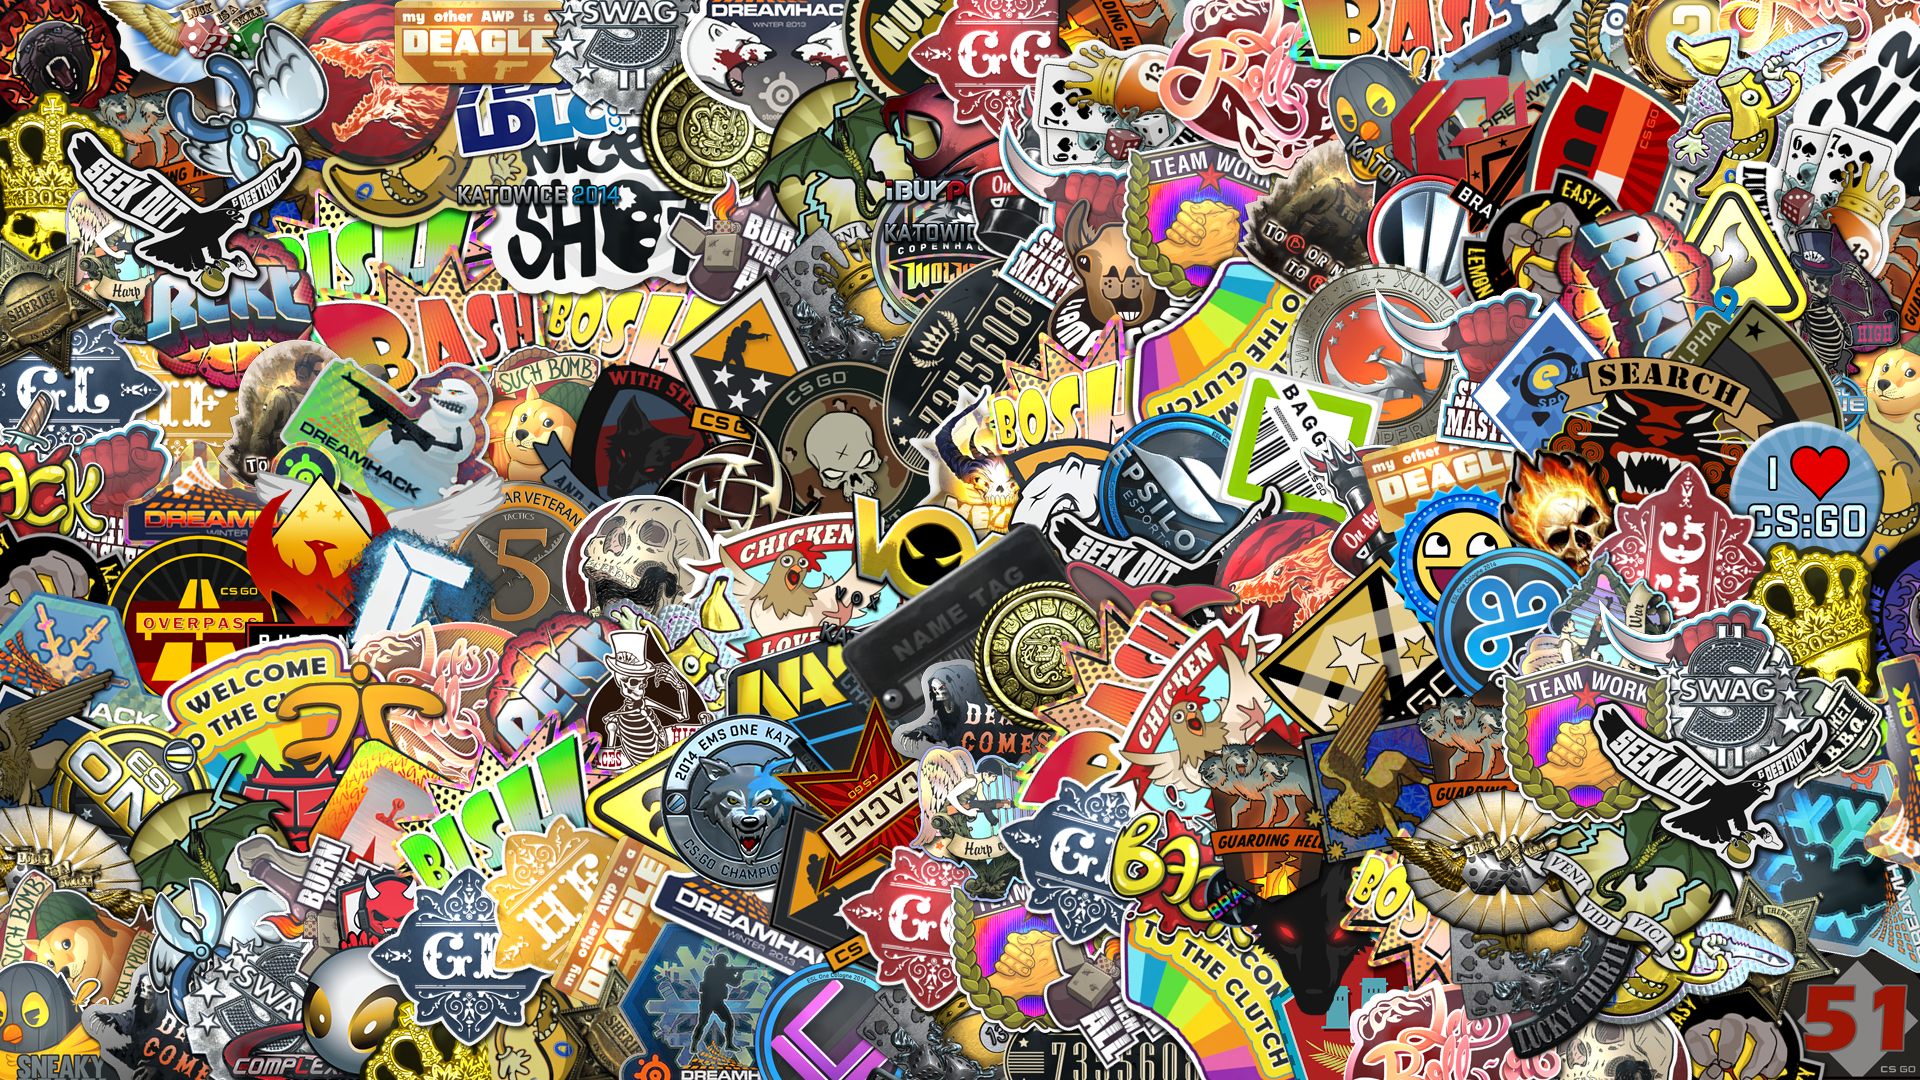 Car stickers honda - Sticker Bomb Wallpaper Hd Wallpapersafari